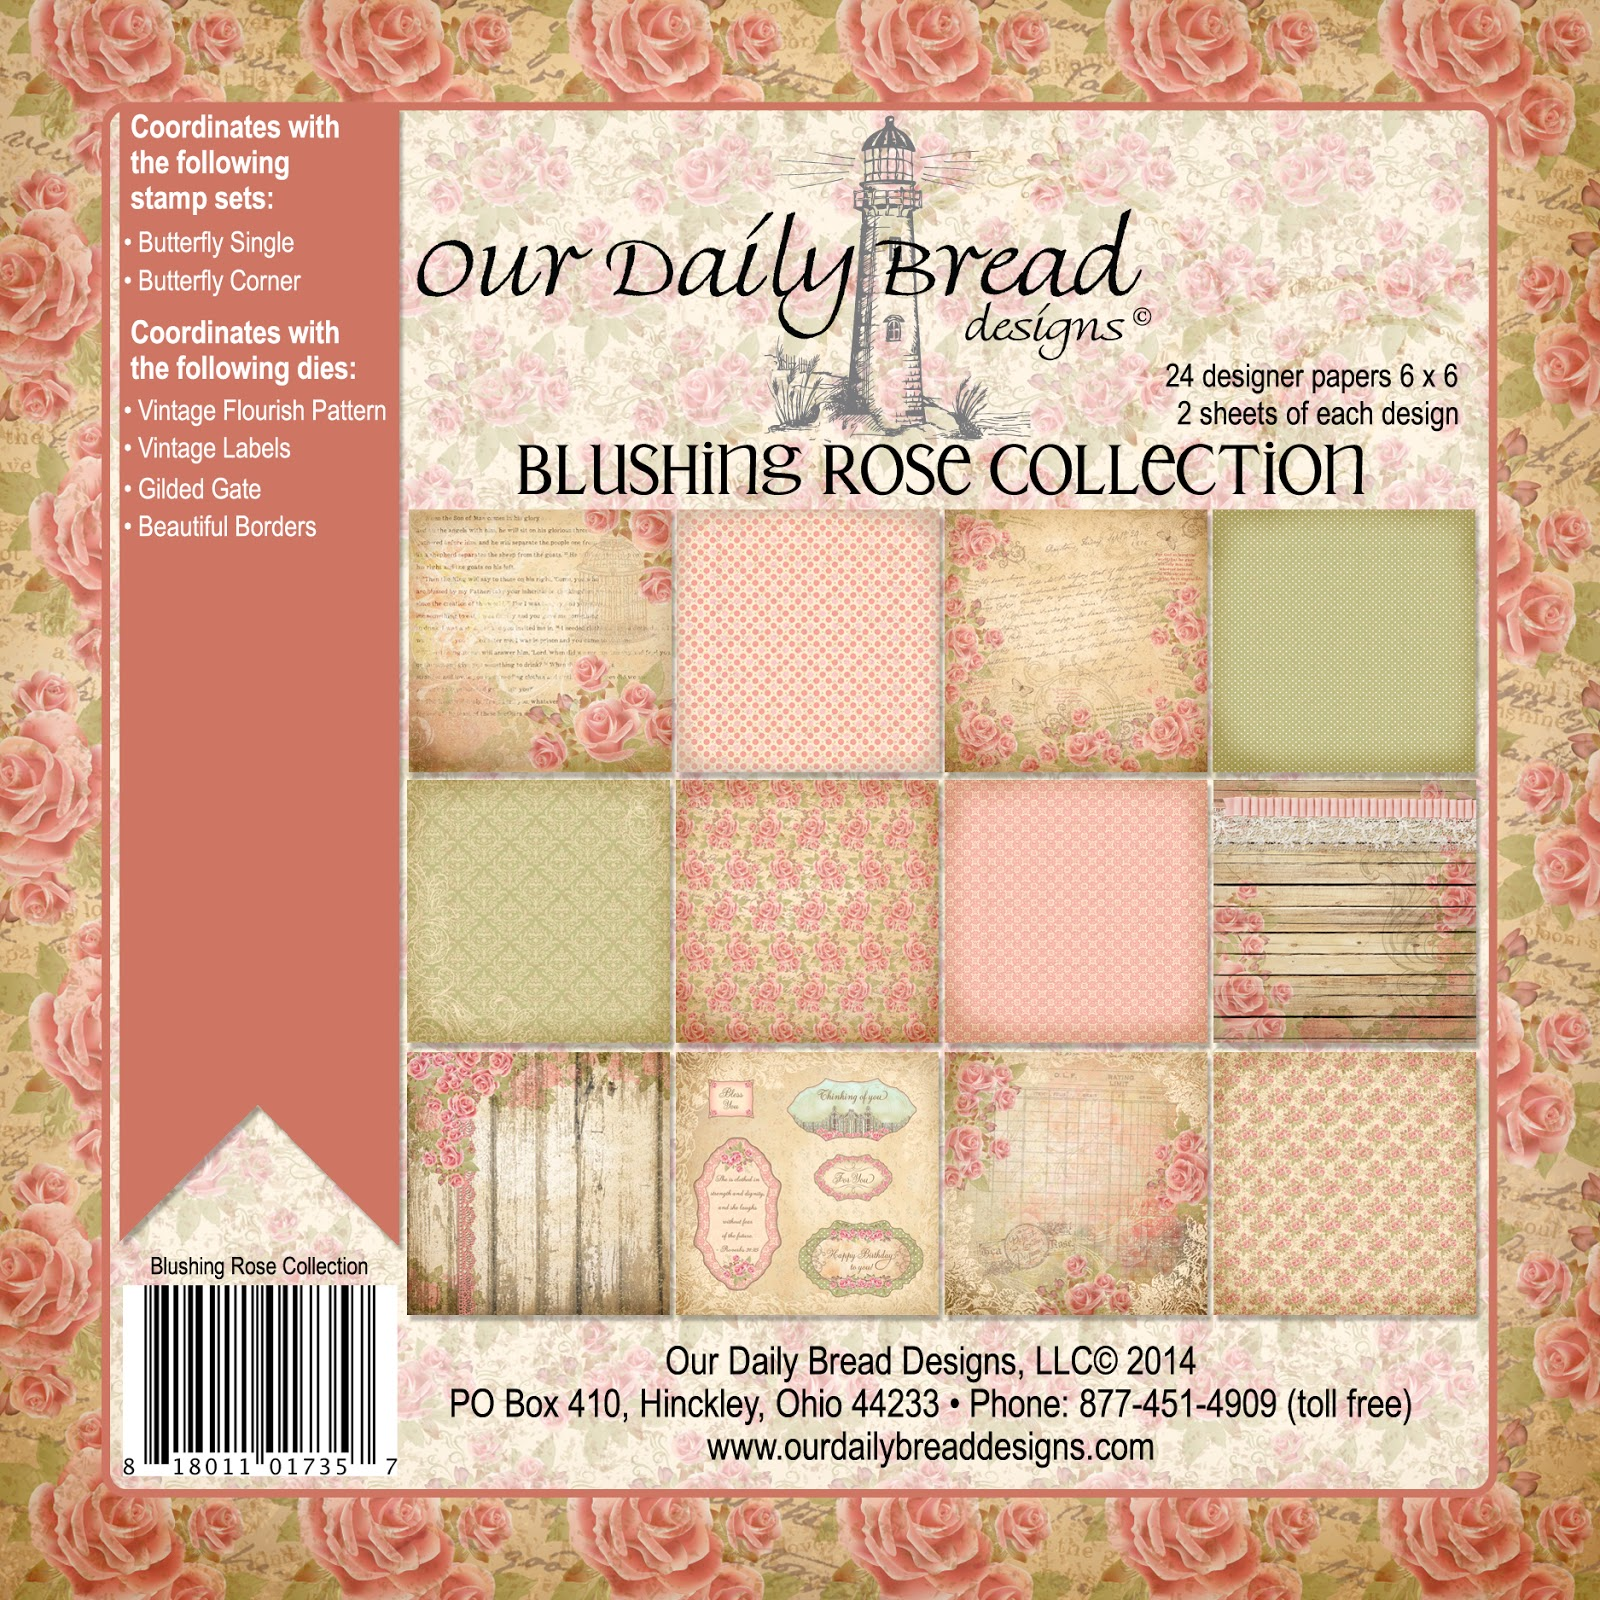 http://www.ourdailybreaddesigns.com/index.php/blushing-rose-collection-6x6-paper-pad.html